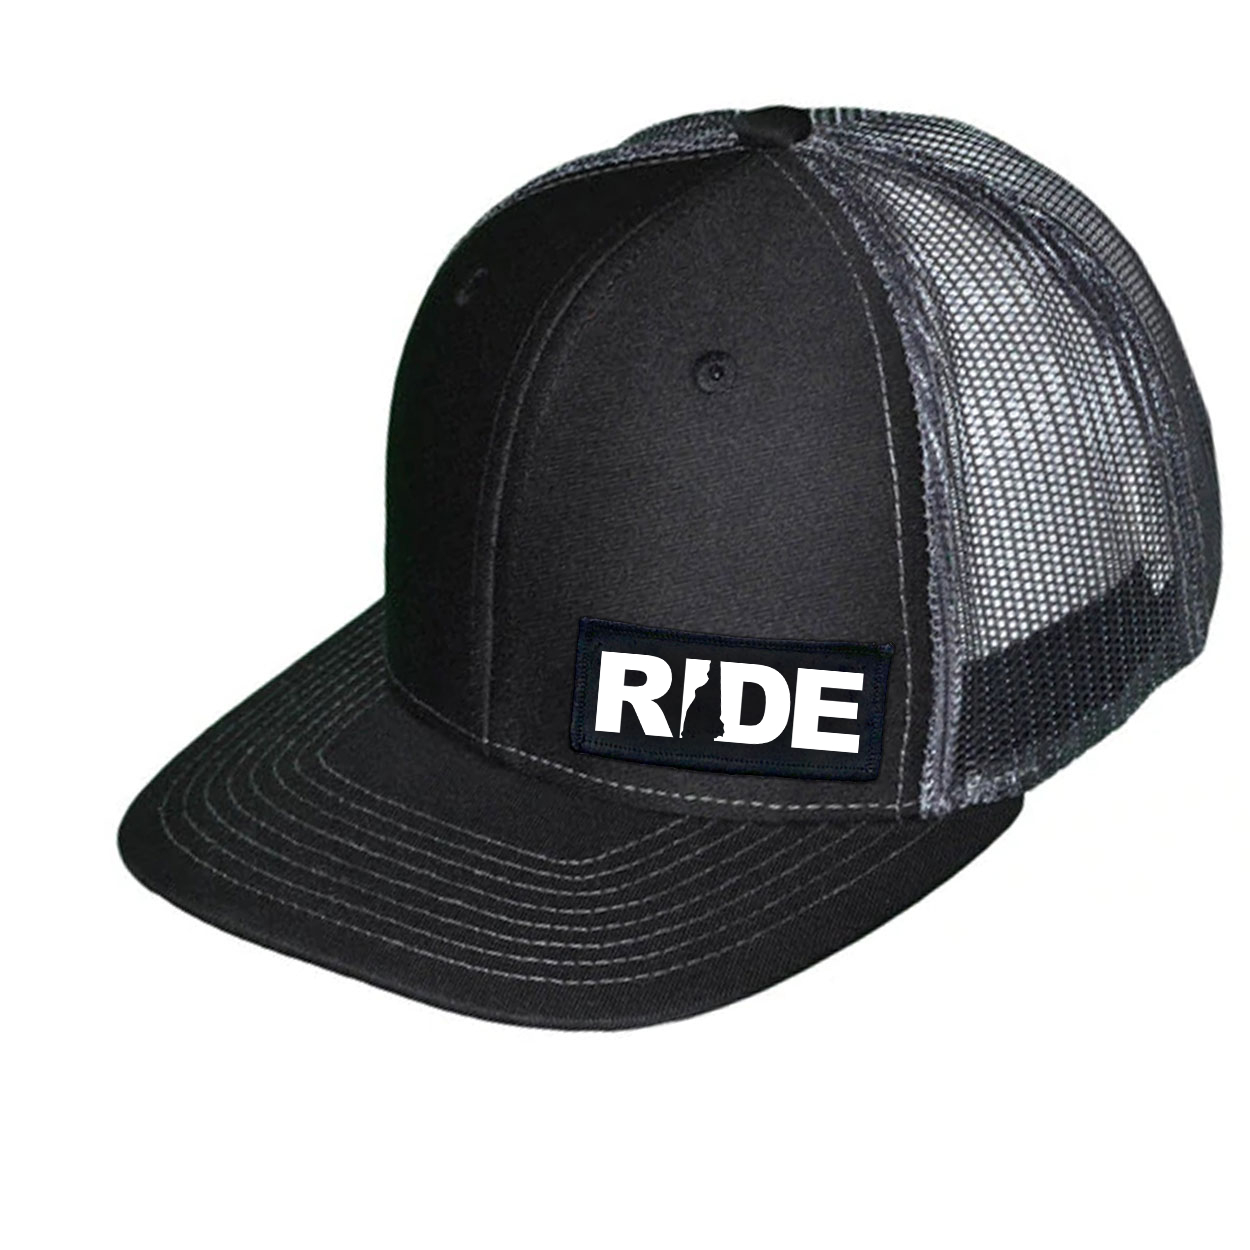 Ride New Hampshire Night Out Woven Patch Snapback Trucker Hat Black/Dark Gray (White Logo)